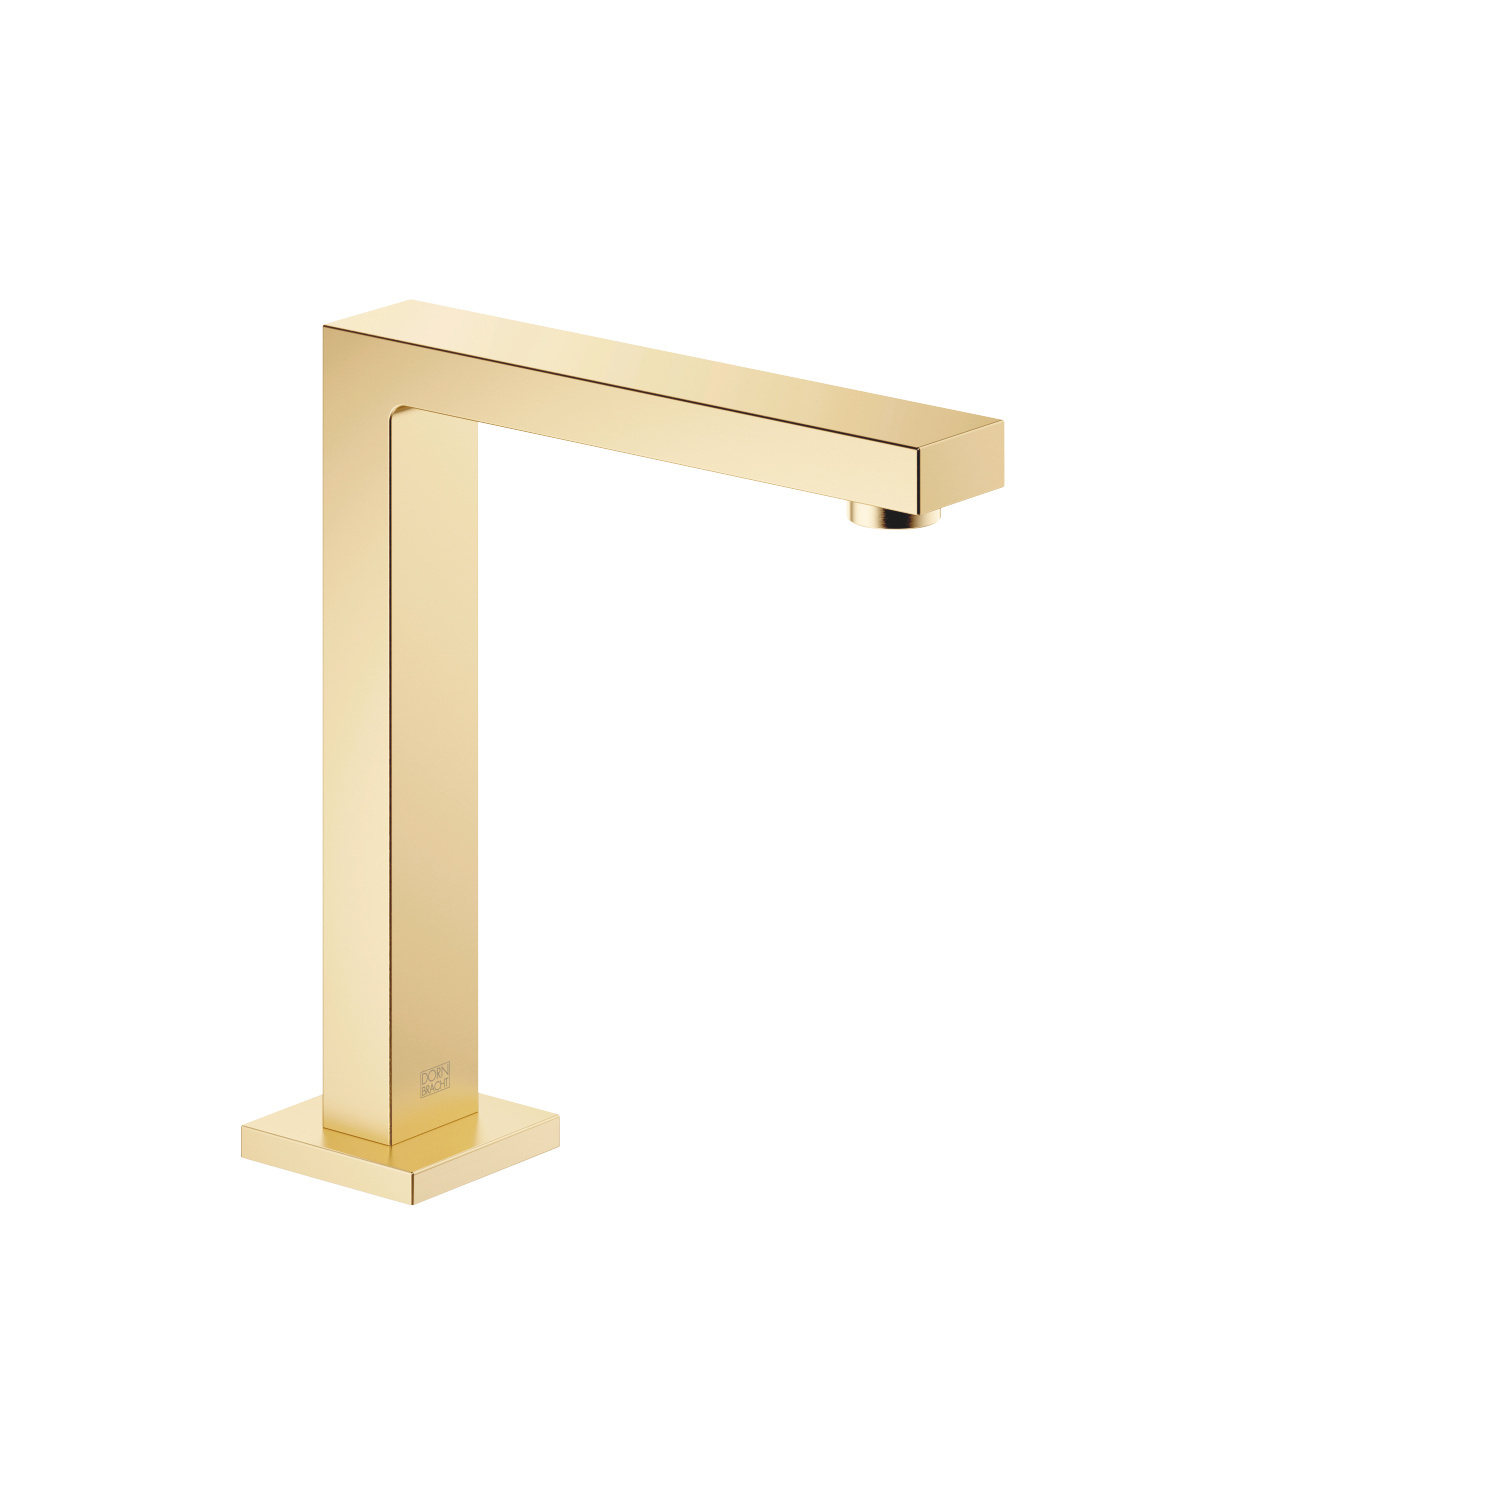 Lavatory spout, deck-mounted without drain - Brushed Durabrass